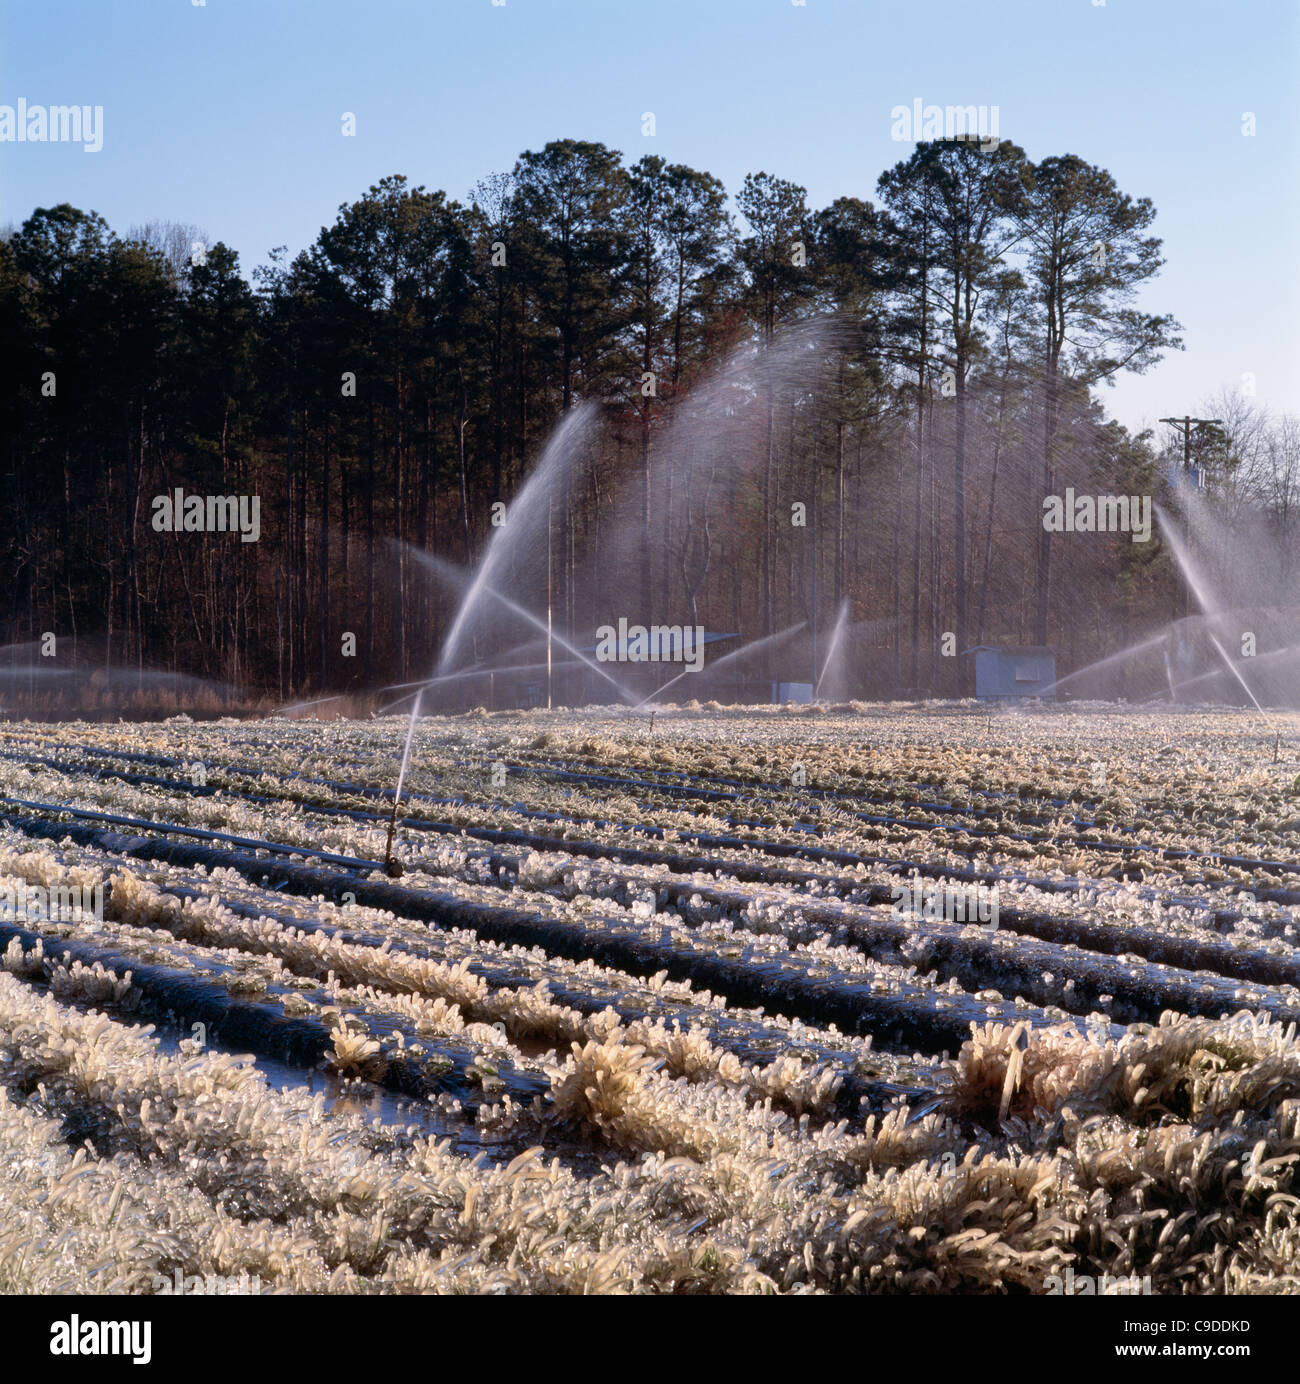 Strawberry field being irrigated to prevent frost damage to developing berries. Shows ice. - Stock Image